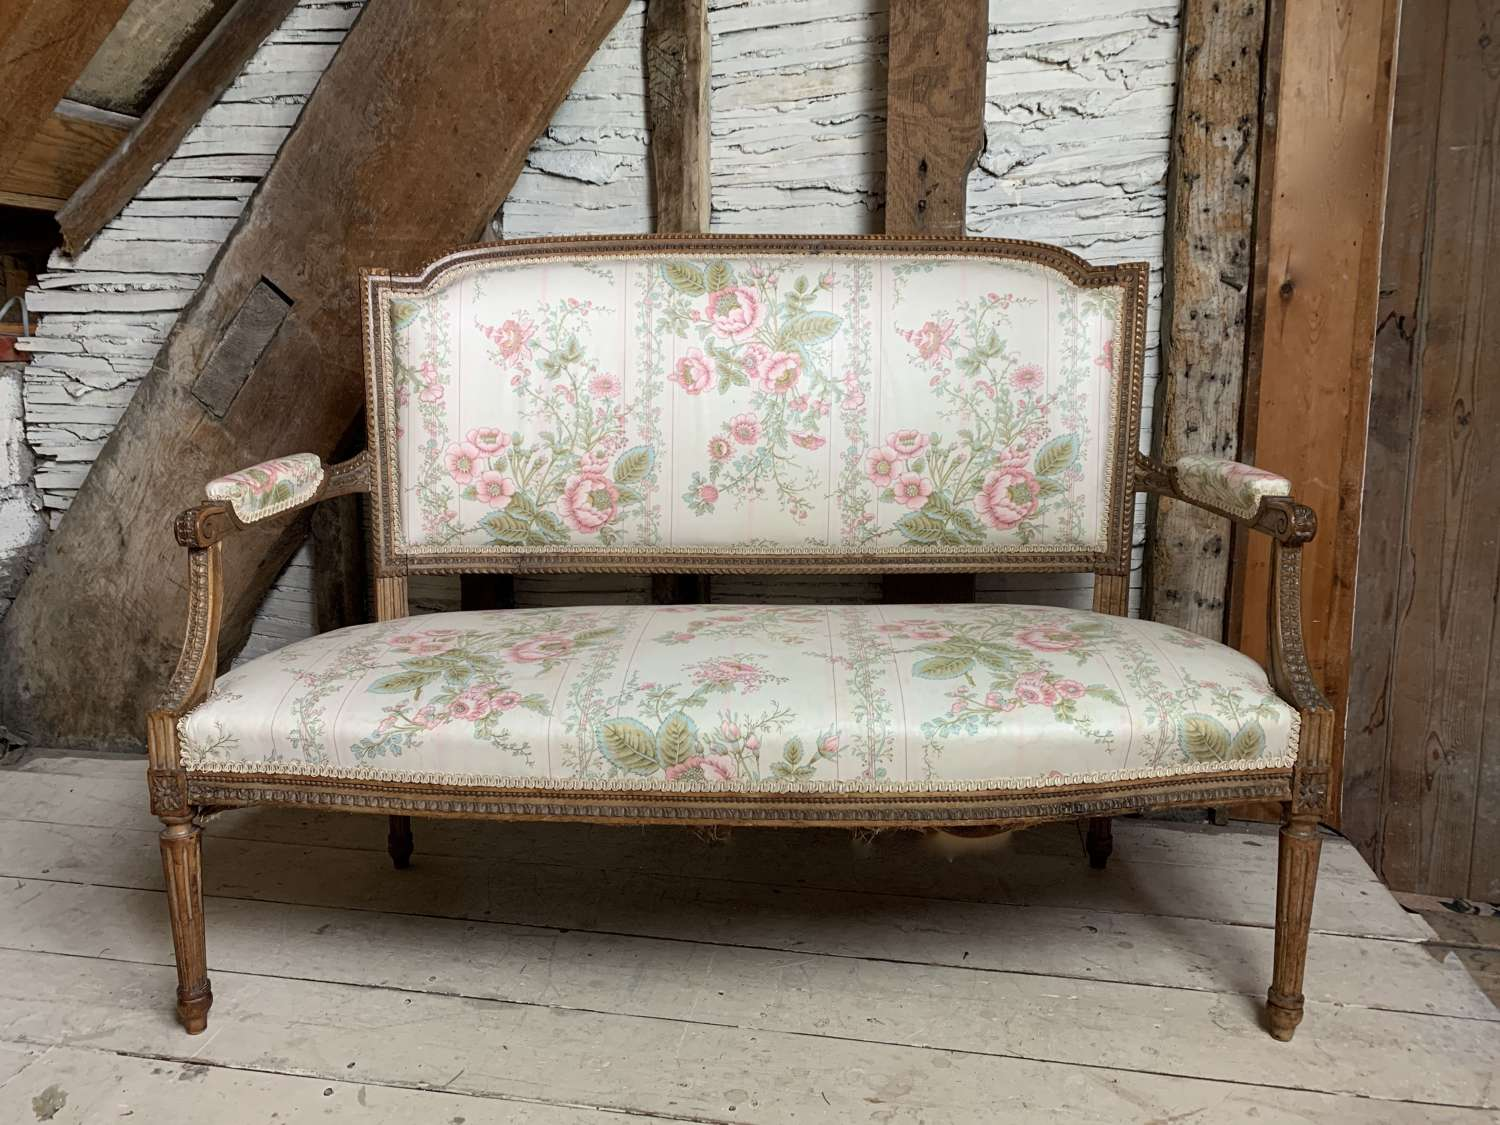 Vintage French Louis XVI Style Sofa for Recovering